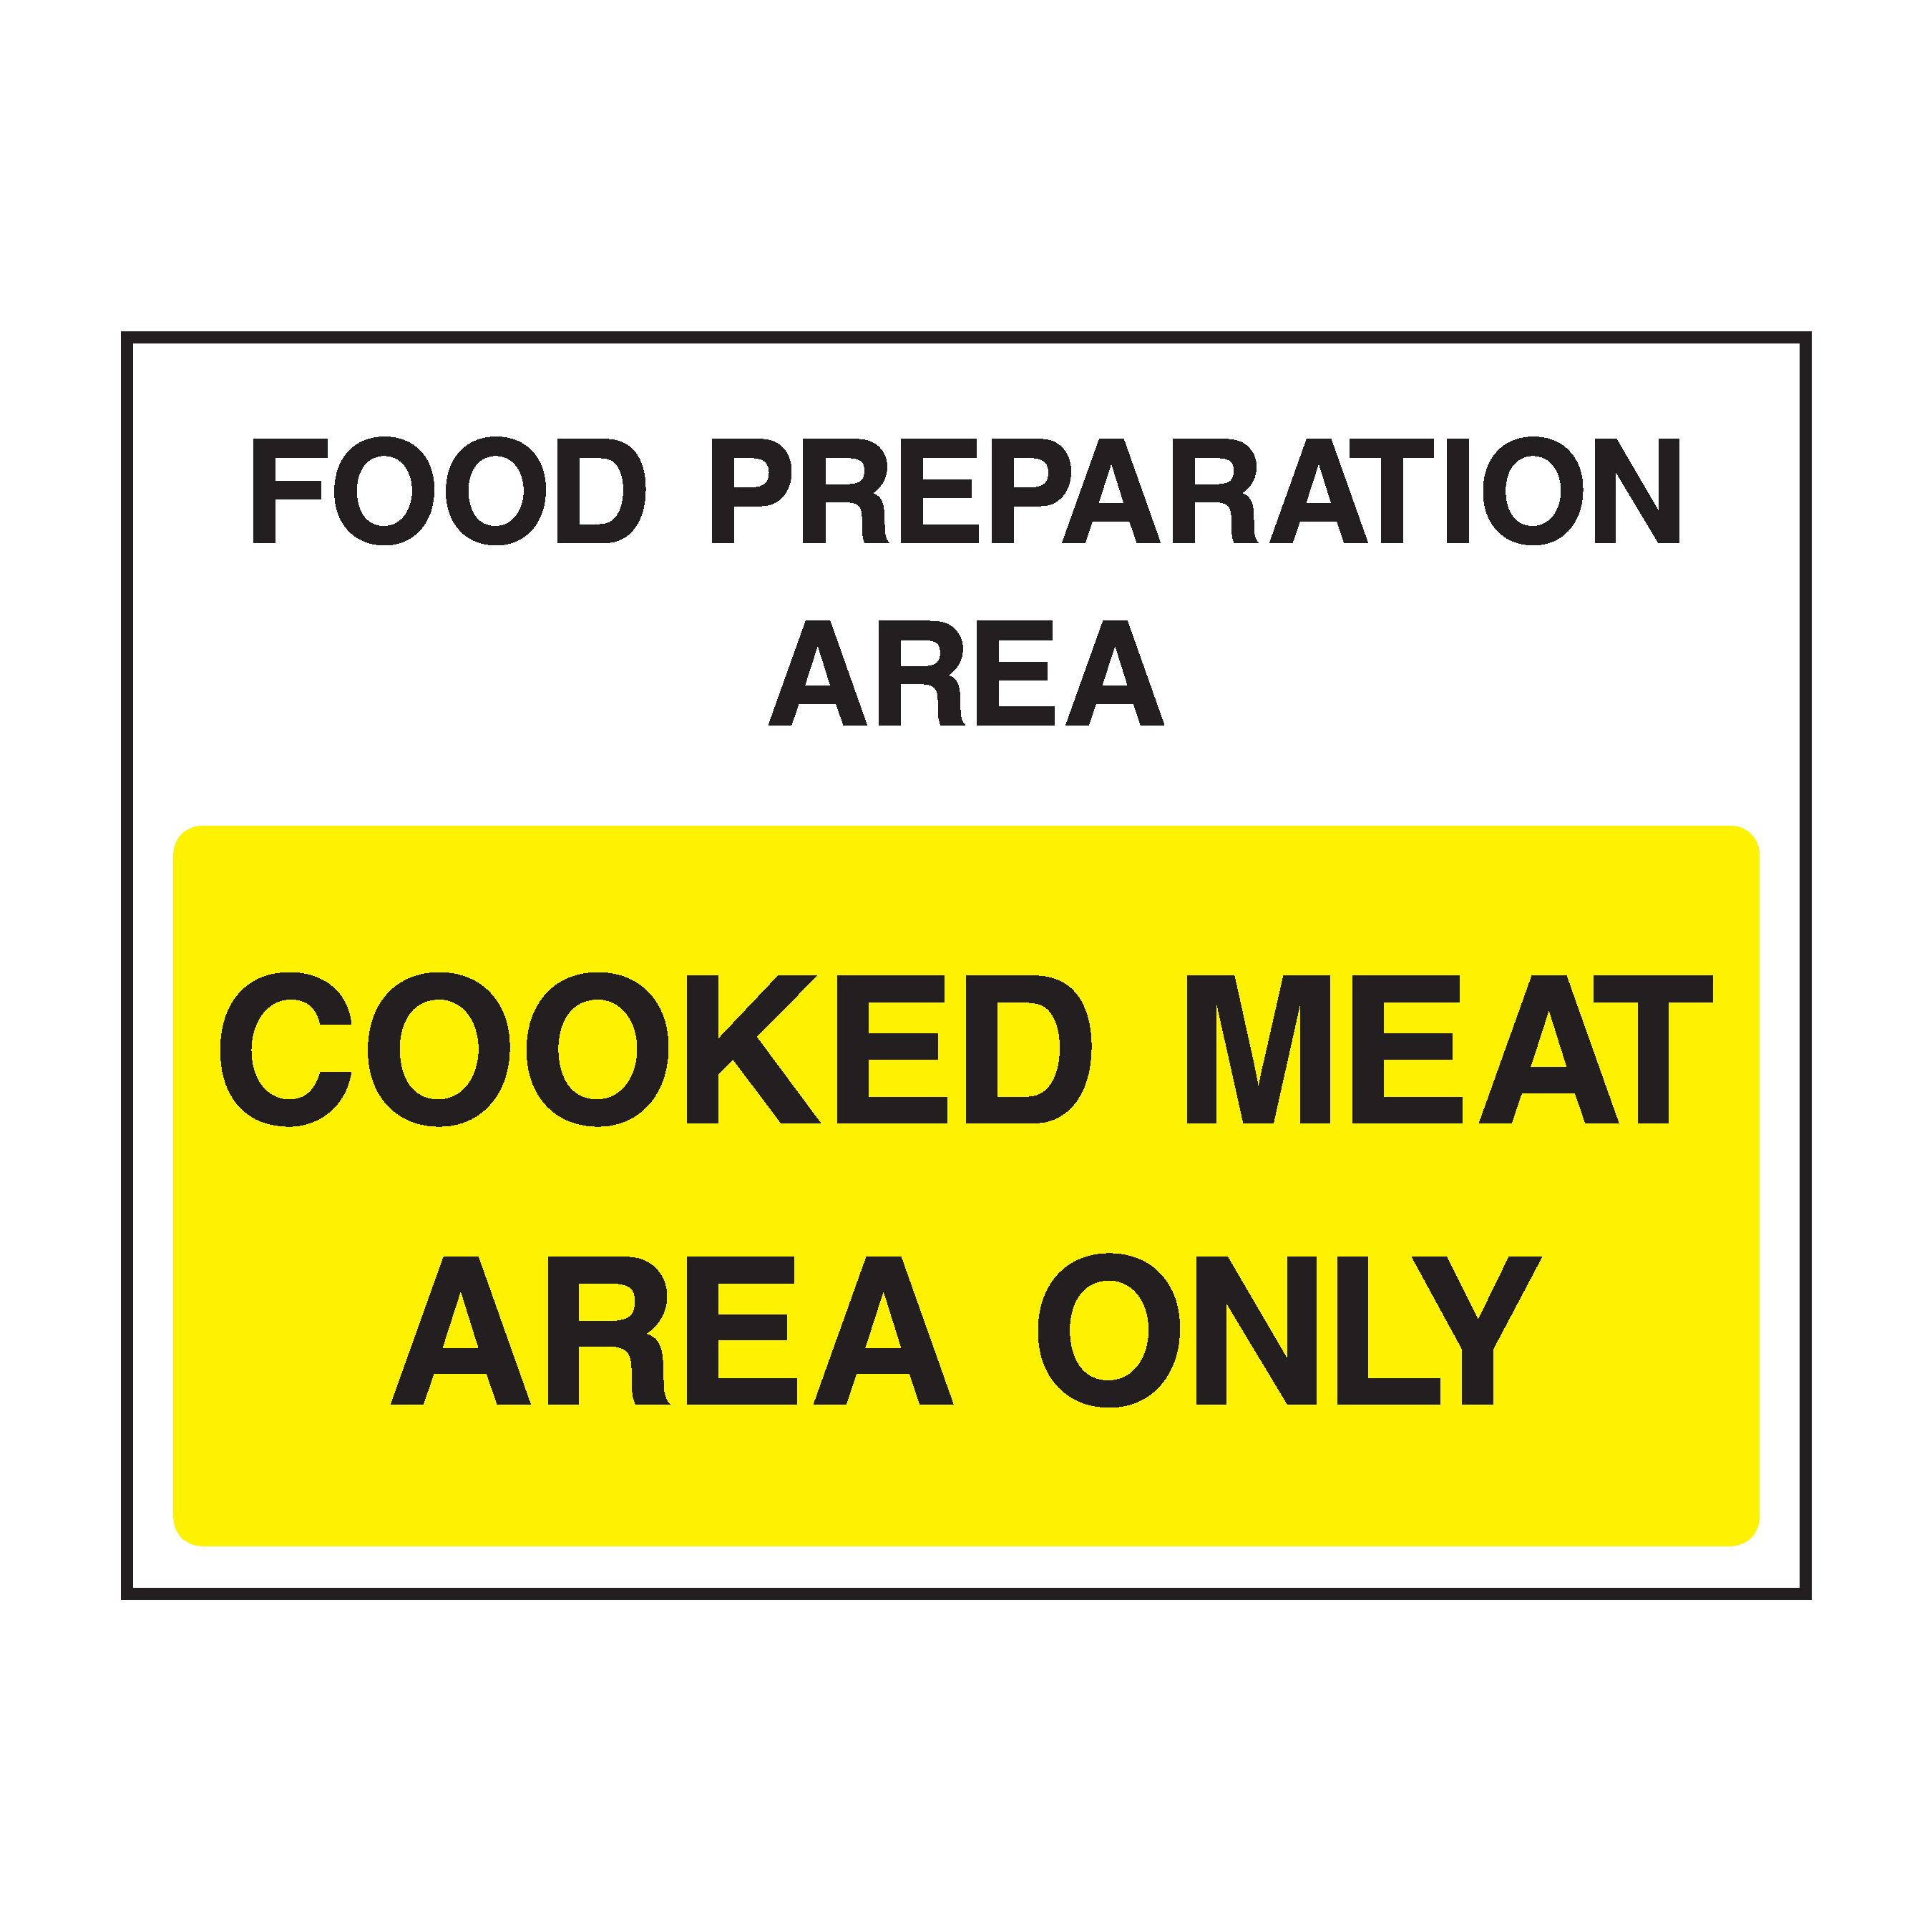 food preparation area cooked meat area only fleet dynamic